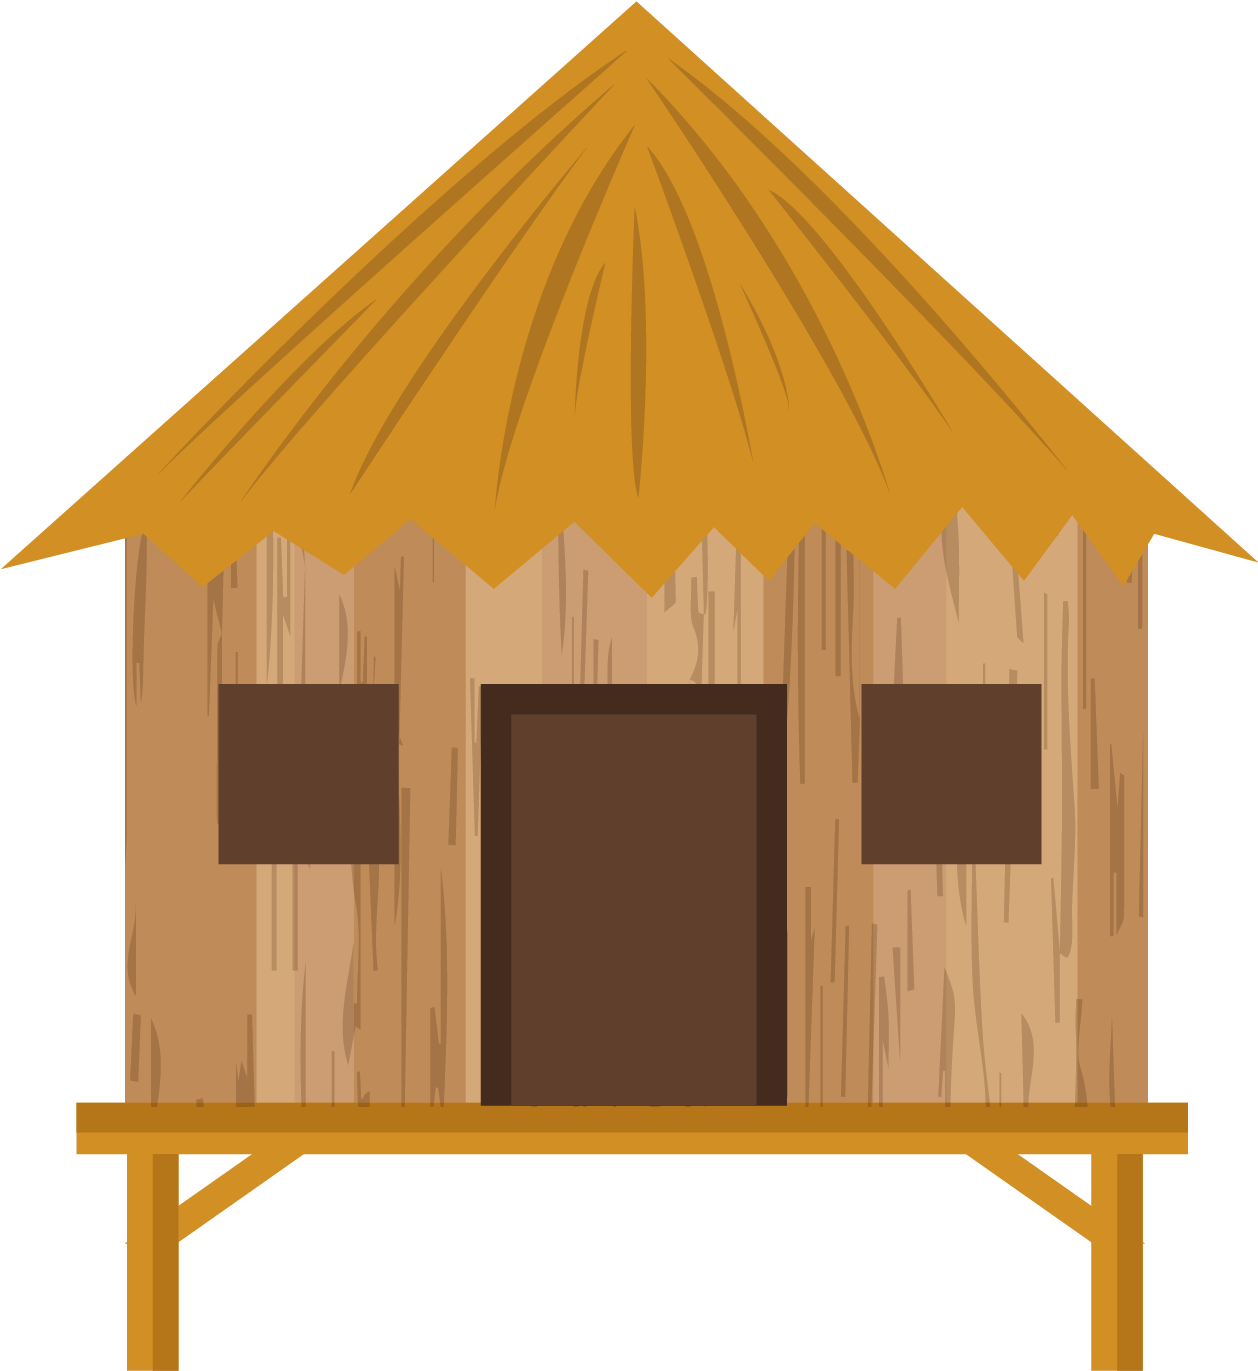 Download free png royalty. Grass clipart house